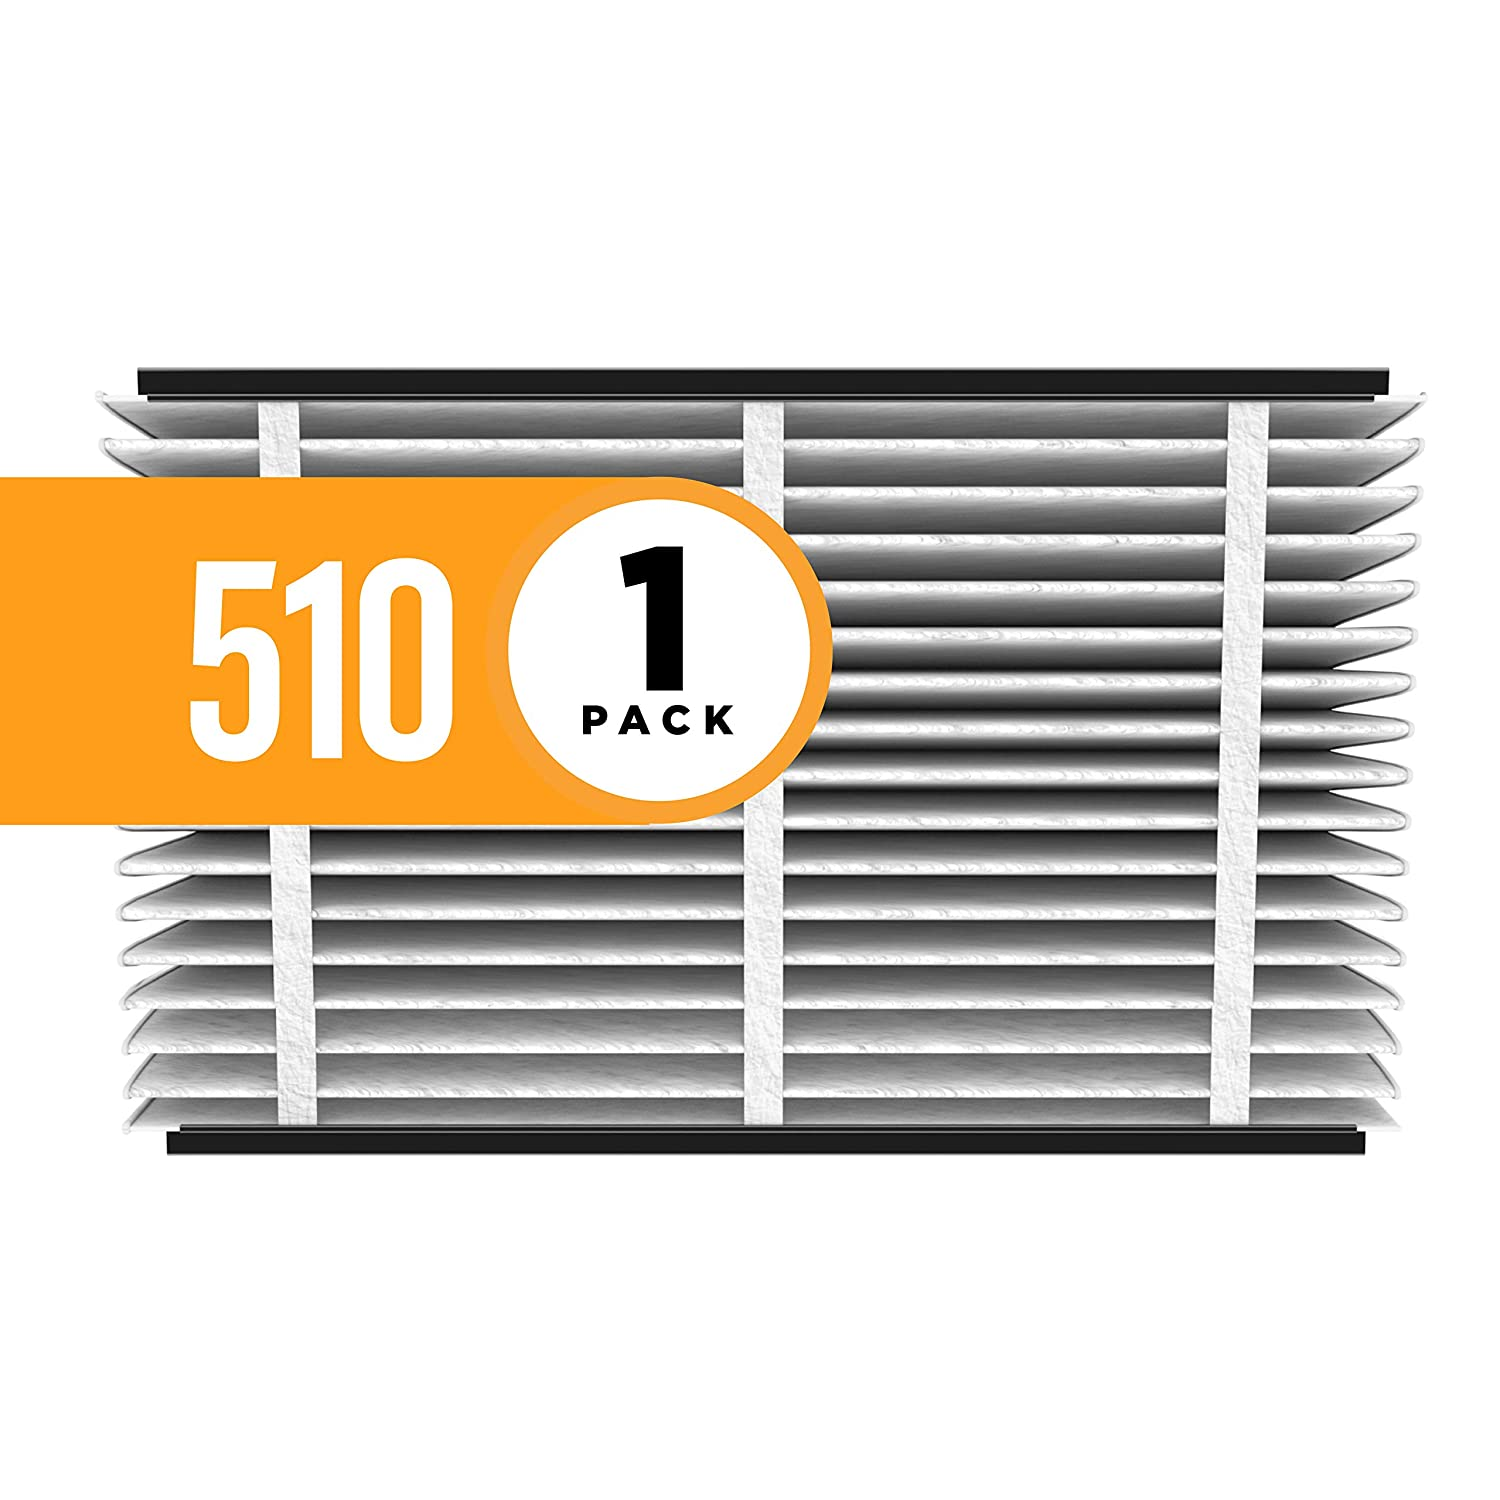 Aprilaire 510 Air Filter for Aprilaire Whole Home Air Purifiers, MERV 11 (Pack of 1)